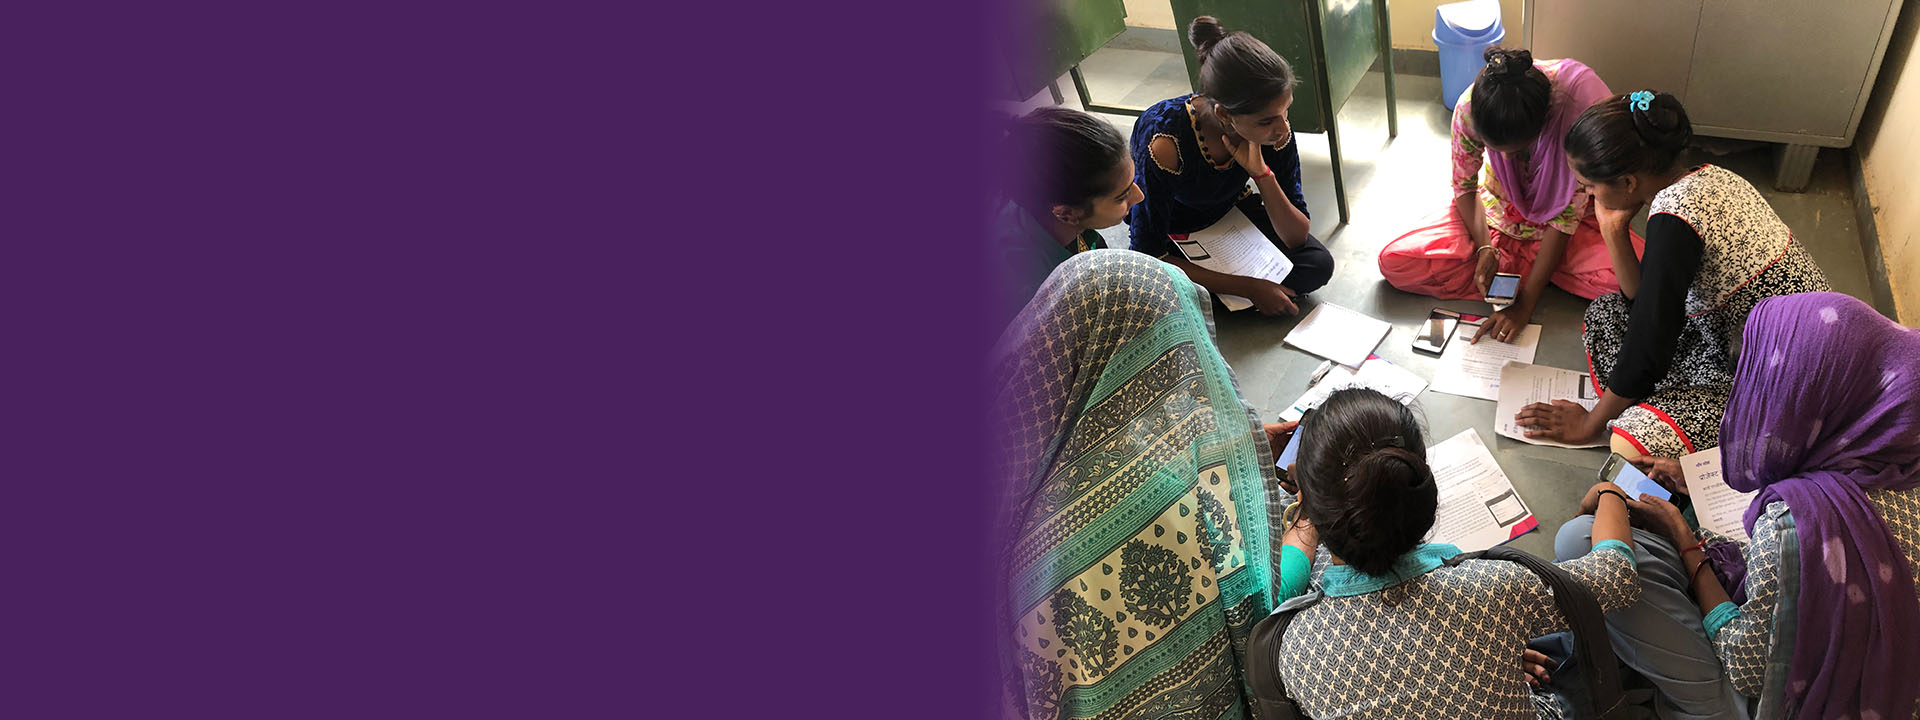 SCAI header - photo a a group of women sitting on the floor working on their phones